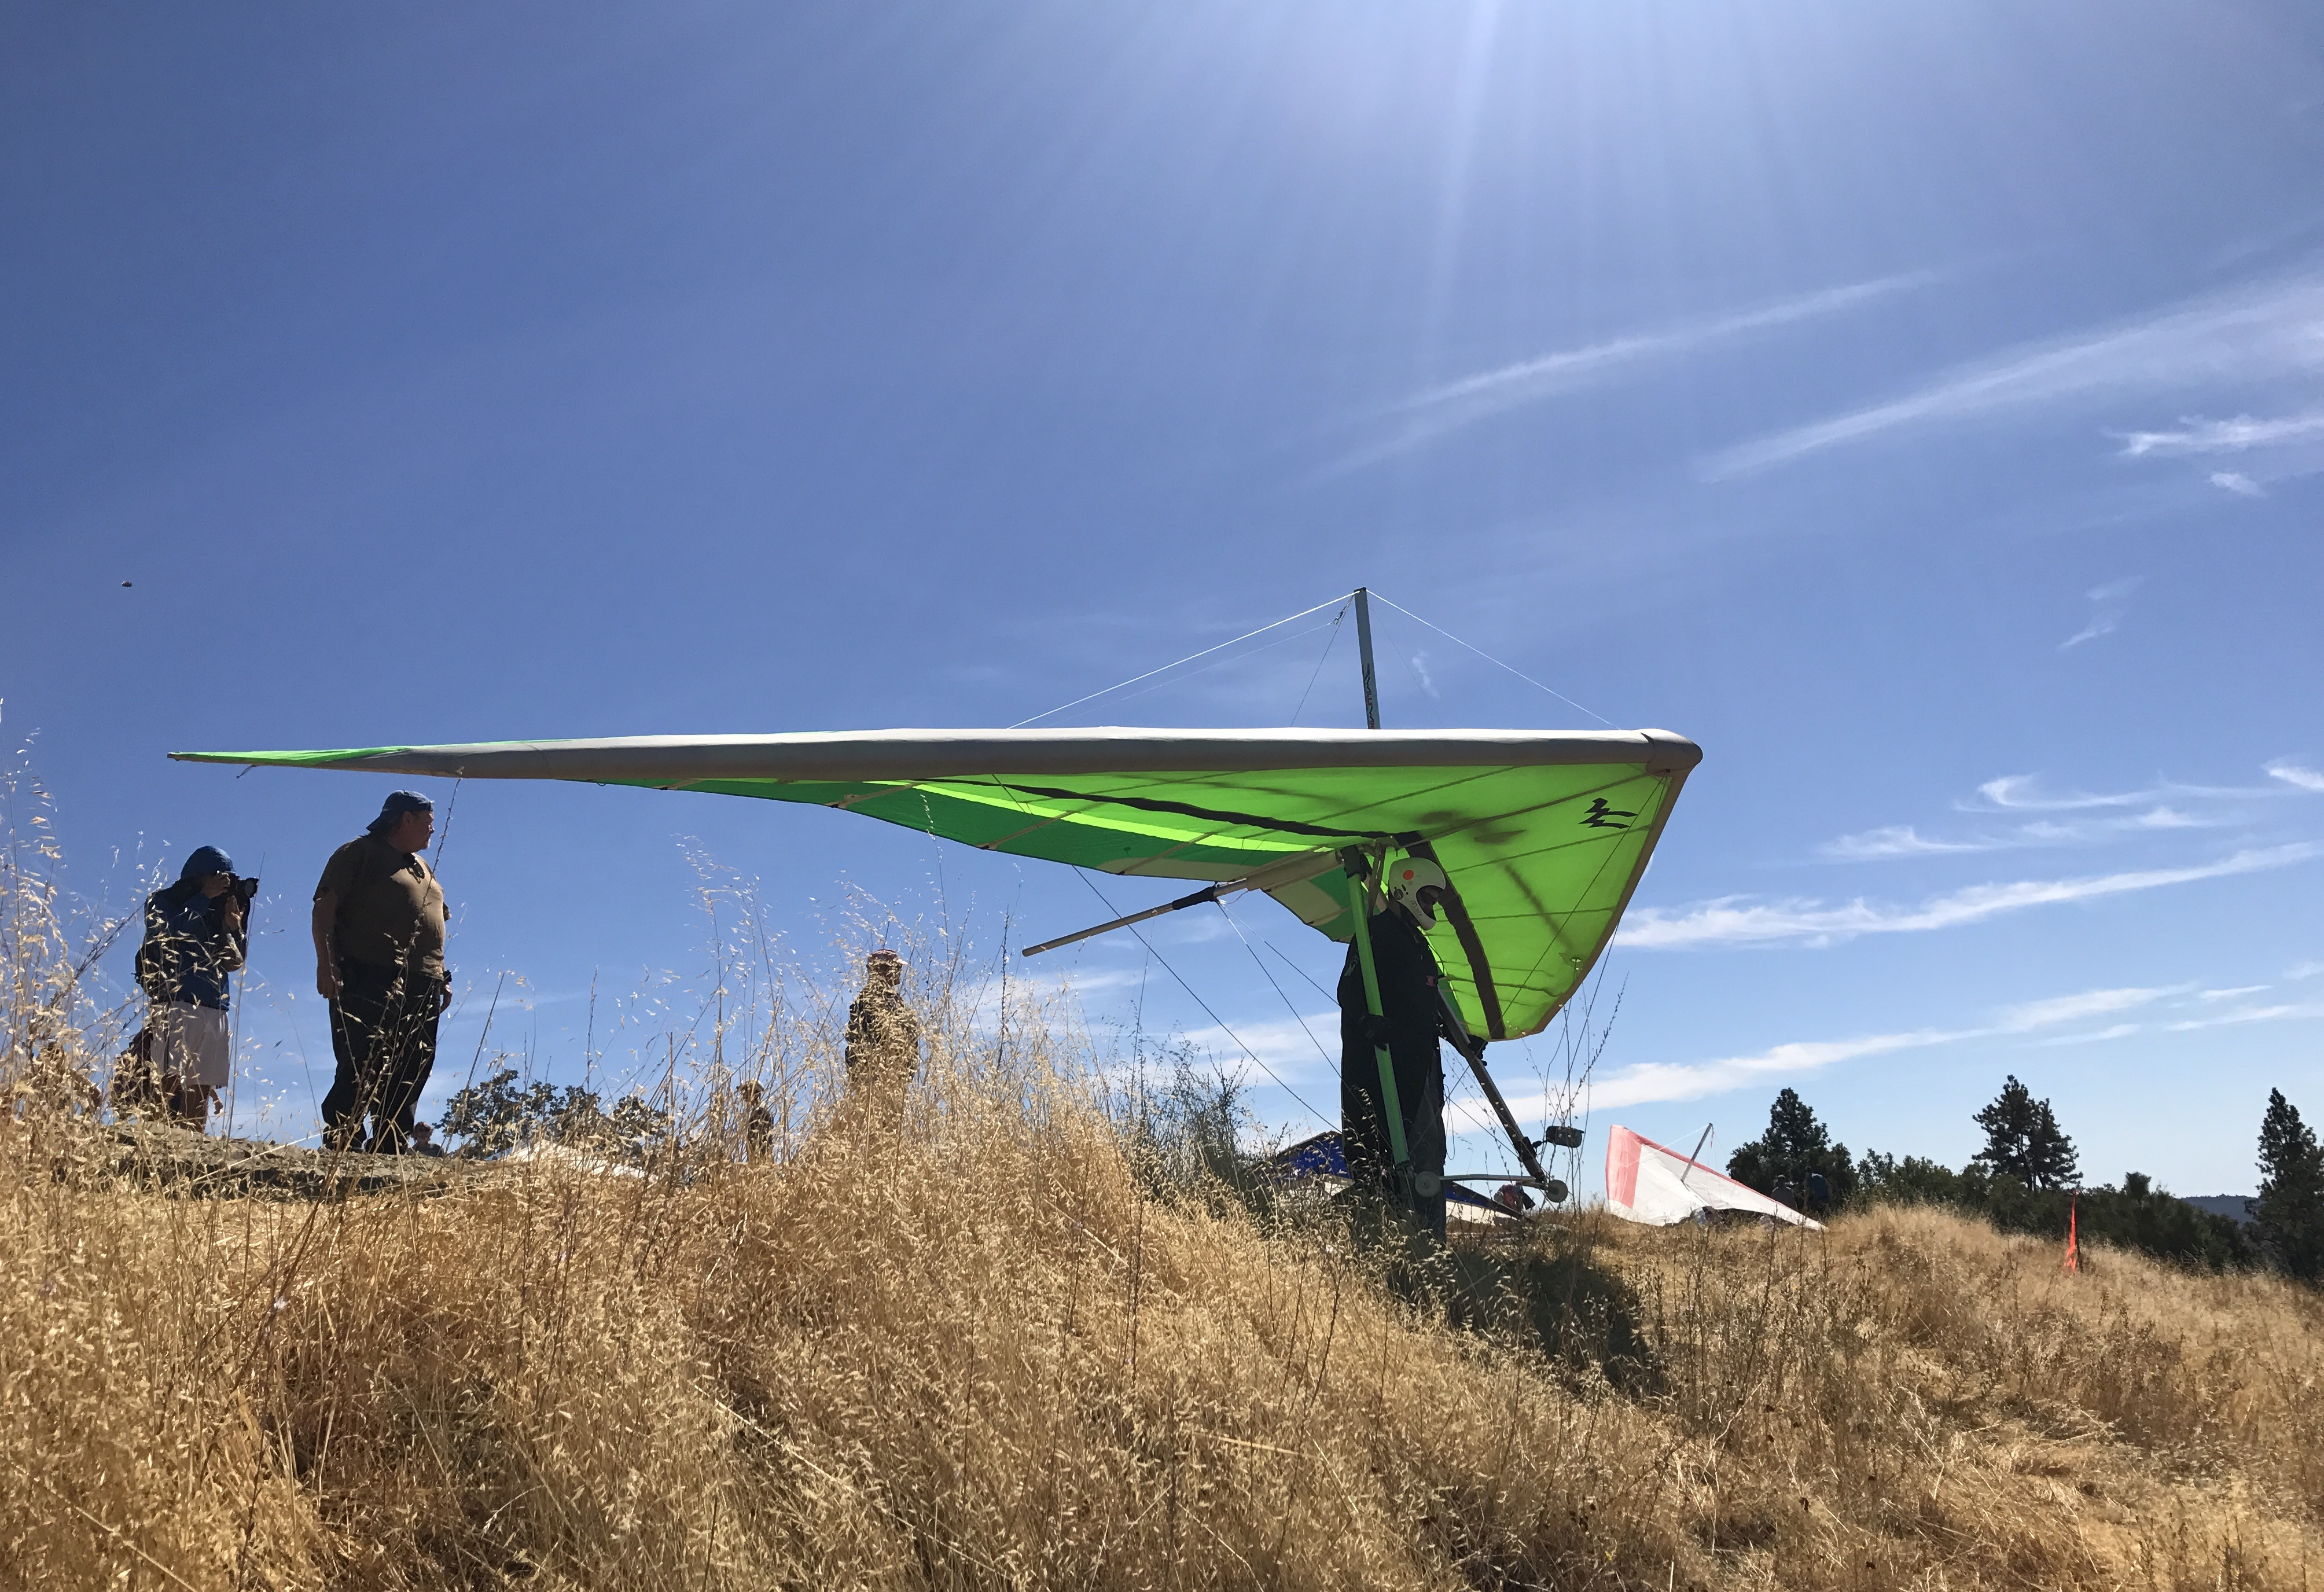 The Risks and Rewards of Hang Gliding